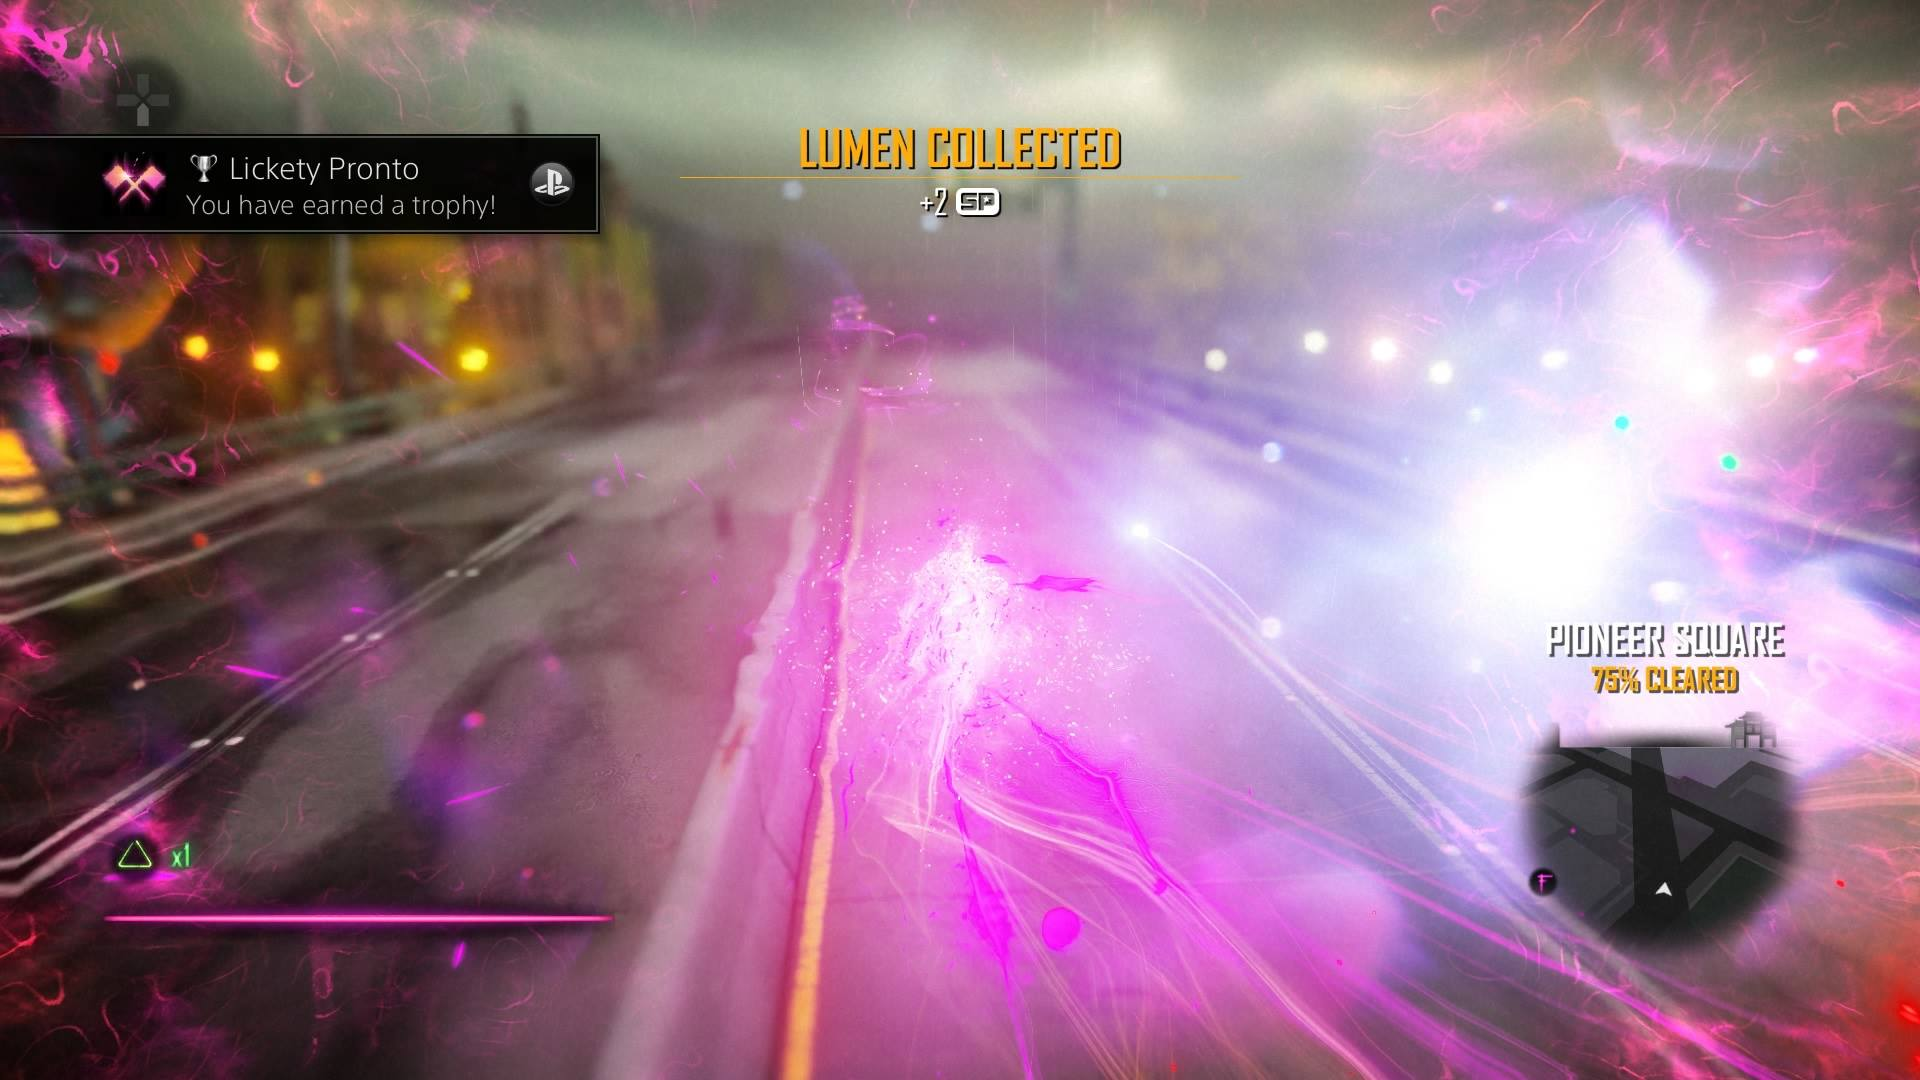 A screenshot from Infamous: First Light